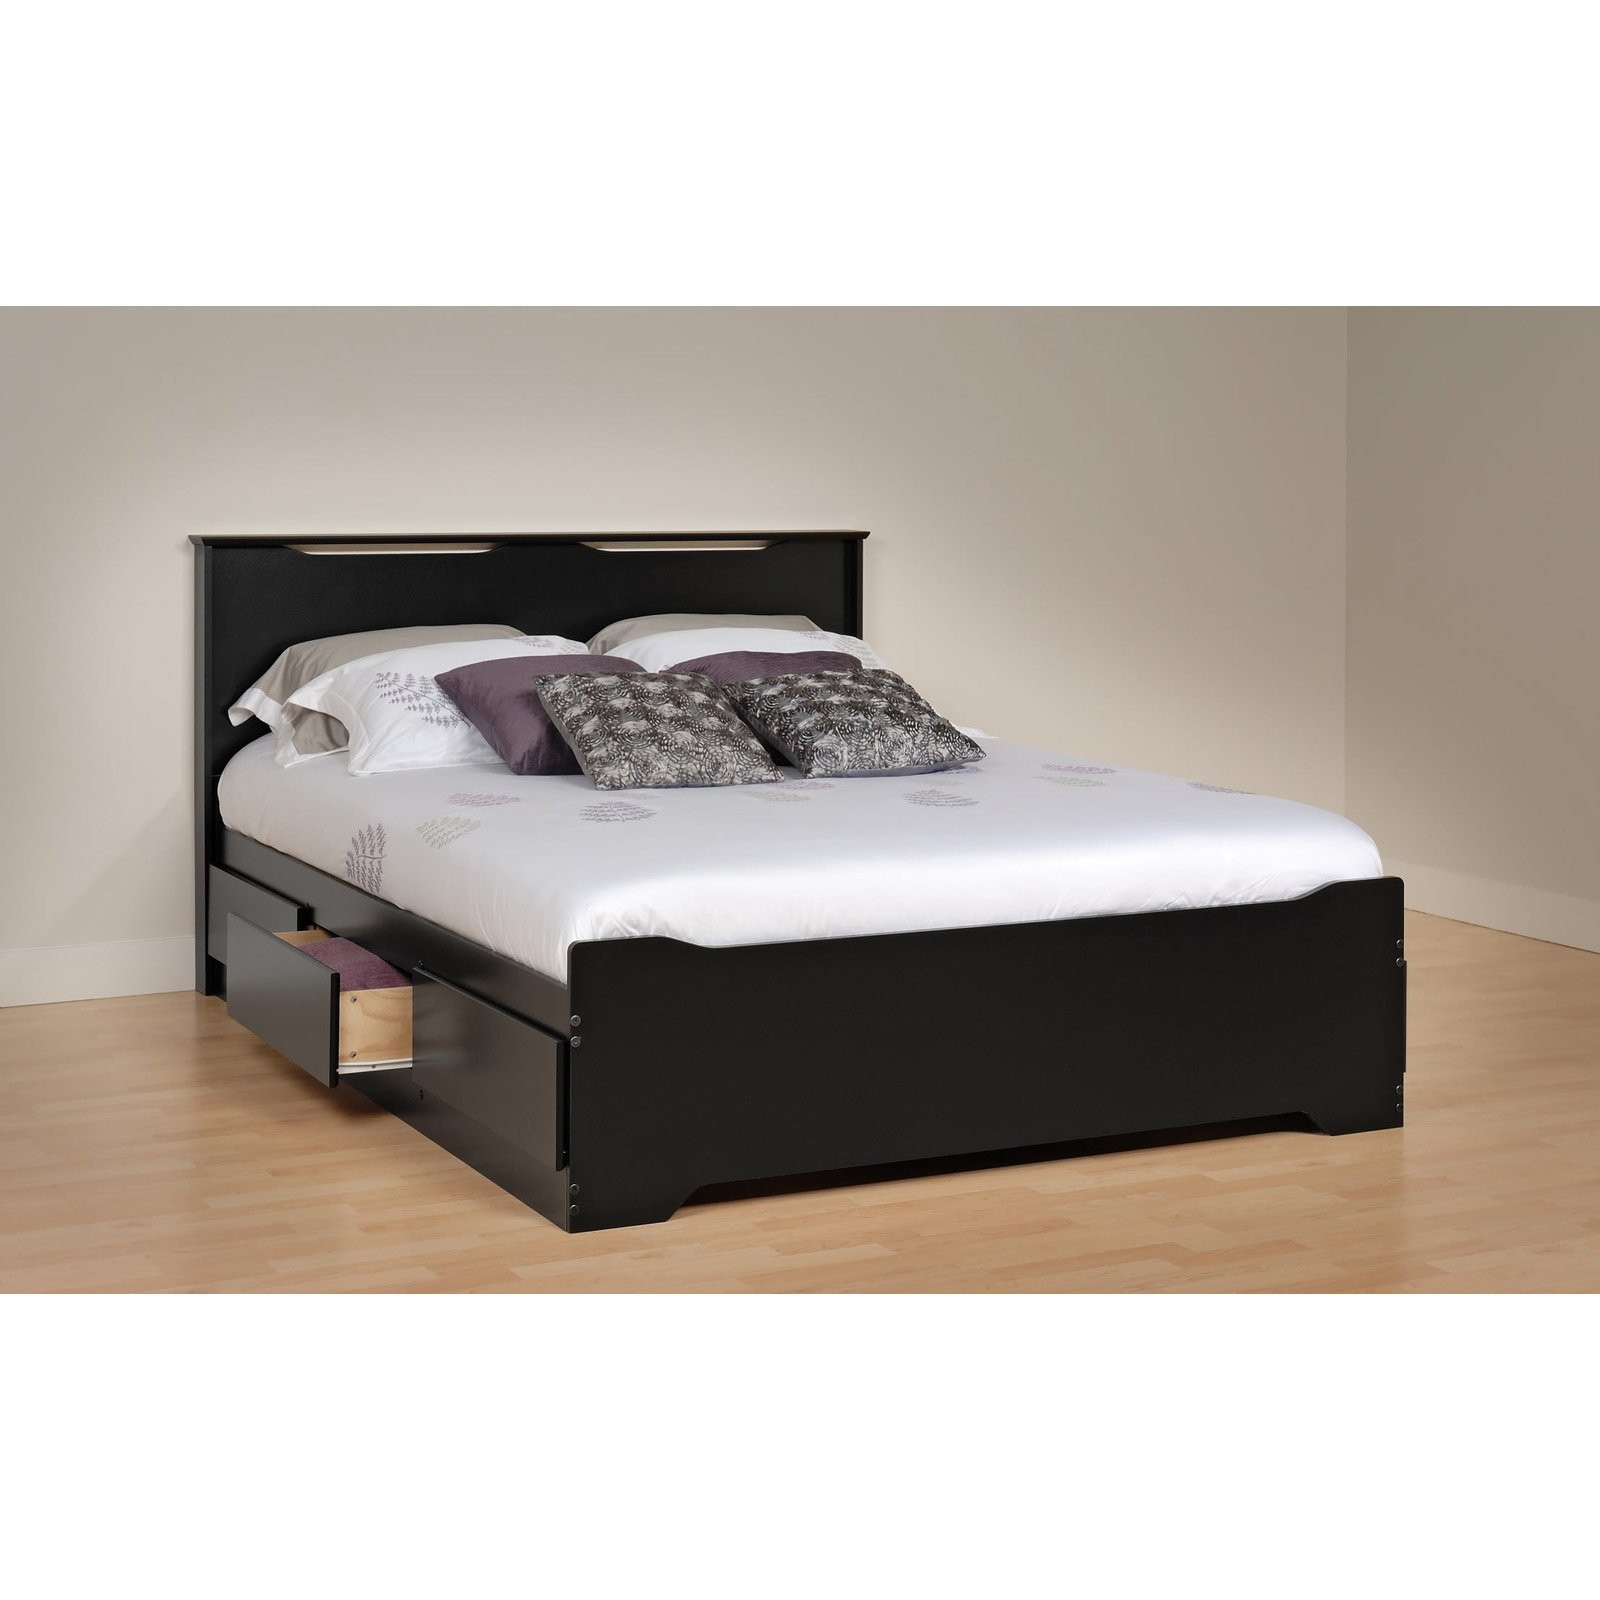 Prepac Coal Harbor Full/Queen Flat Panel Headboard - Black